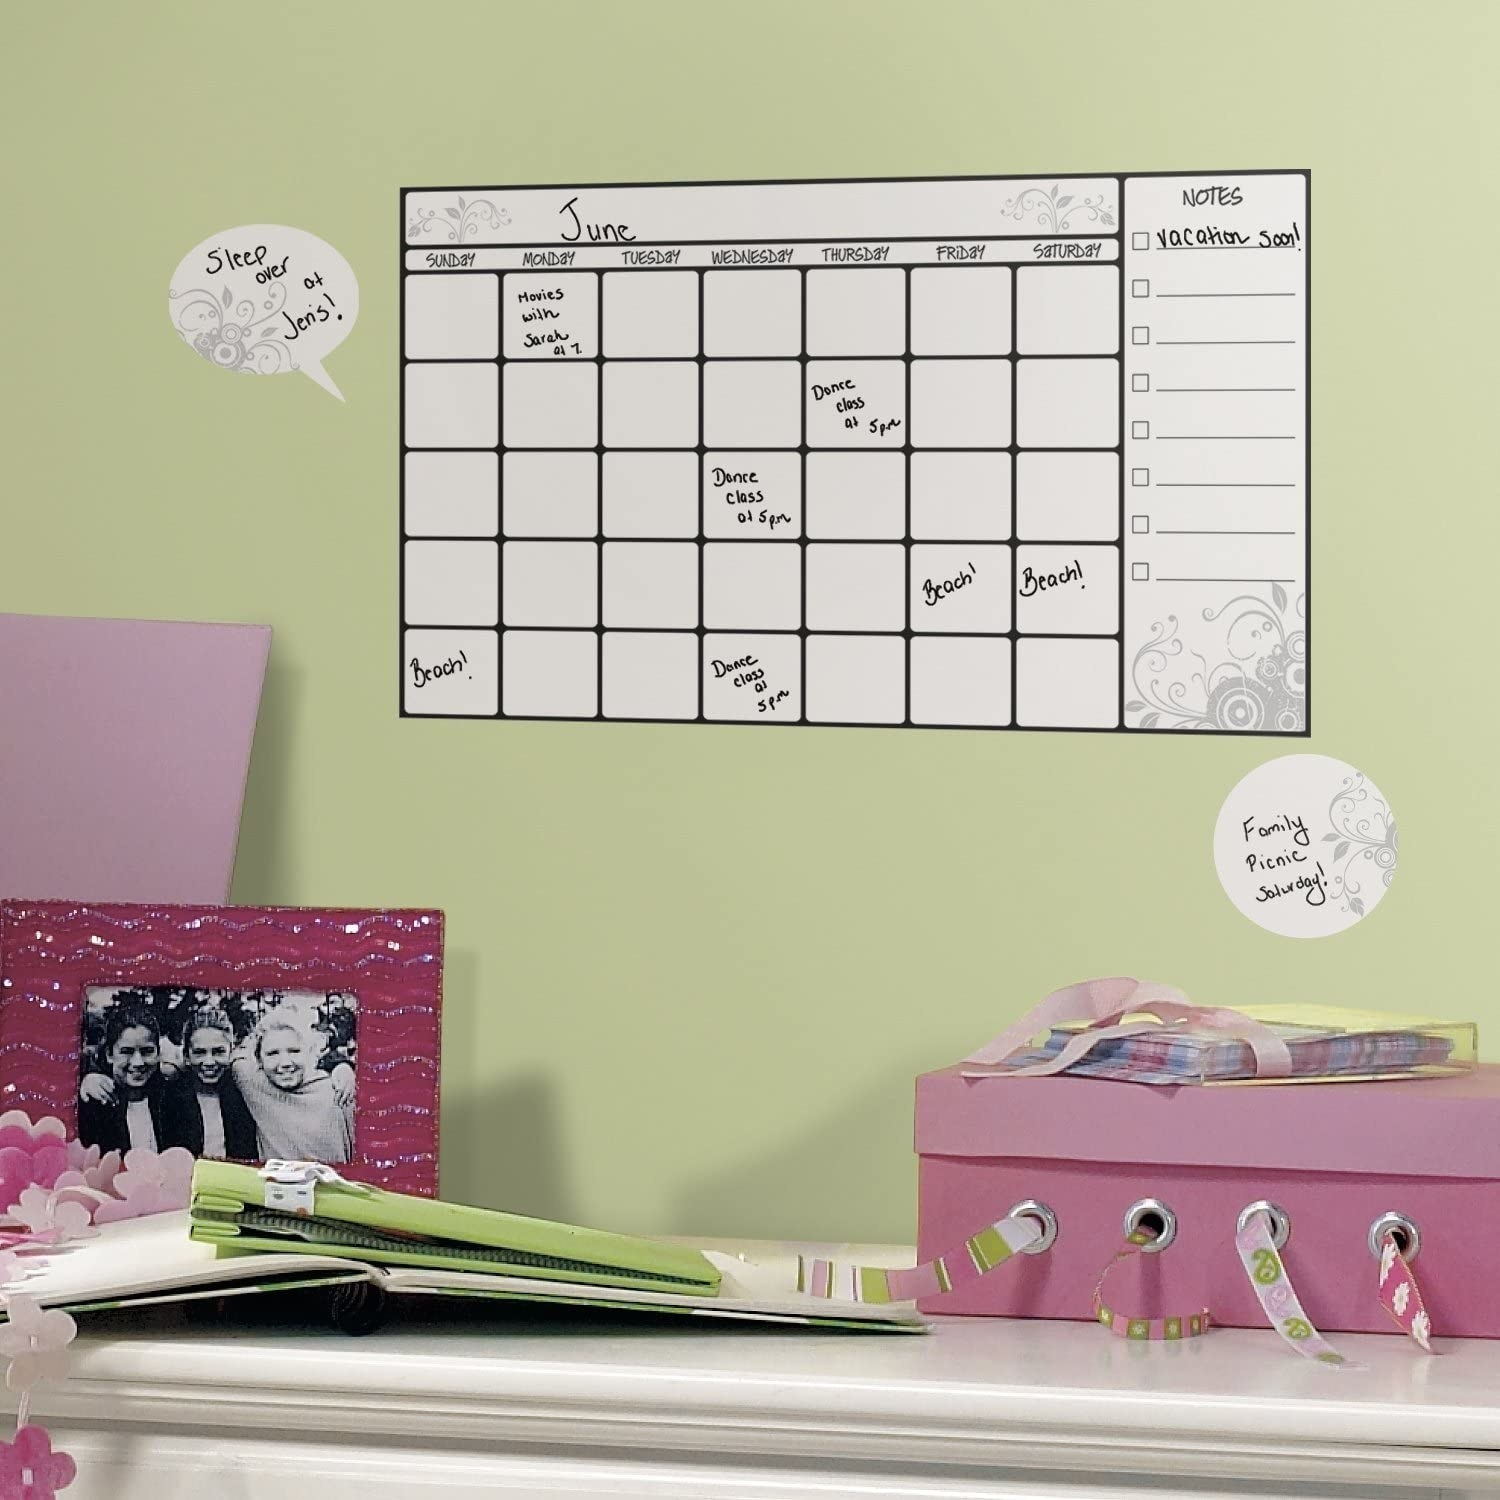 A dry-erase decal calendar on a wall with text written on the days in marker